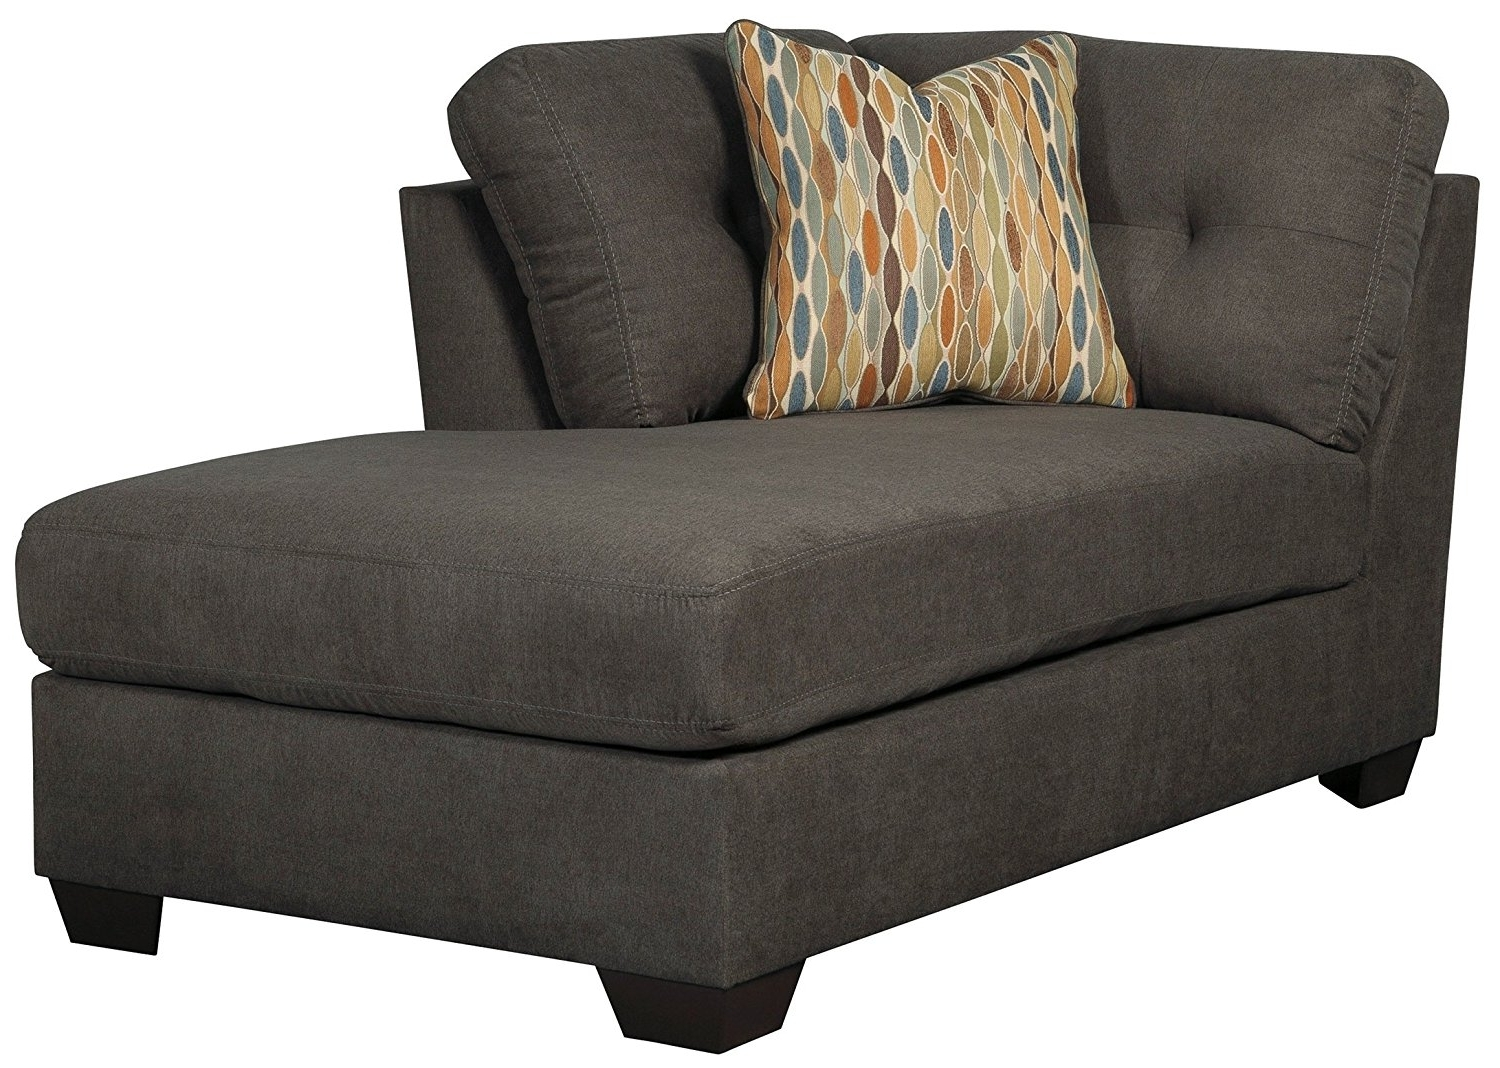 Ashley Furniture Chaise Lounges Pertaining To Most Up To Date Amazon: Ashley Furniture Delta City Right Corner Chaise Lounge (View 3 of 15)